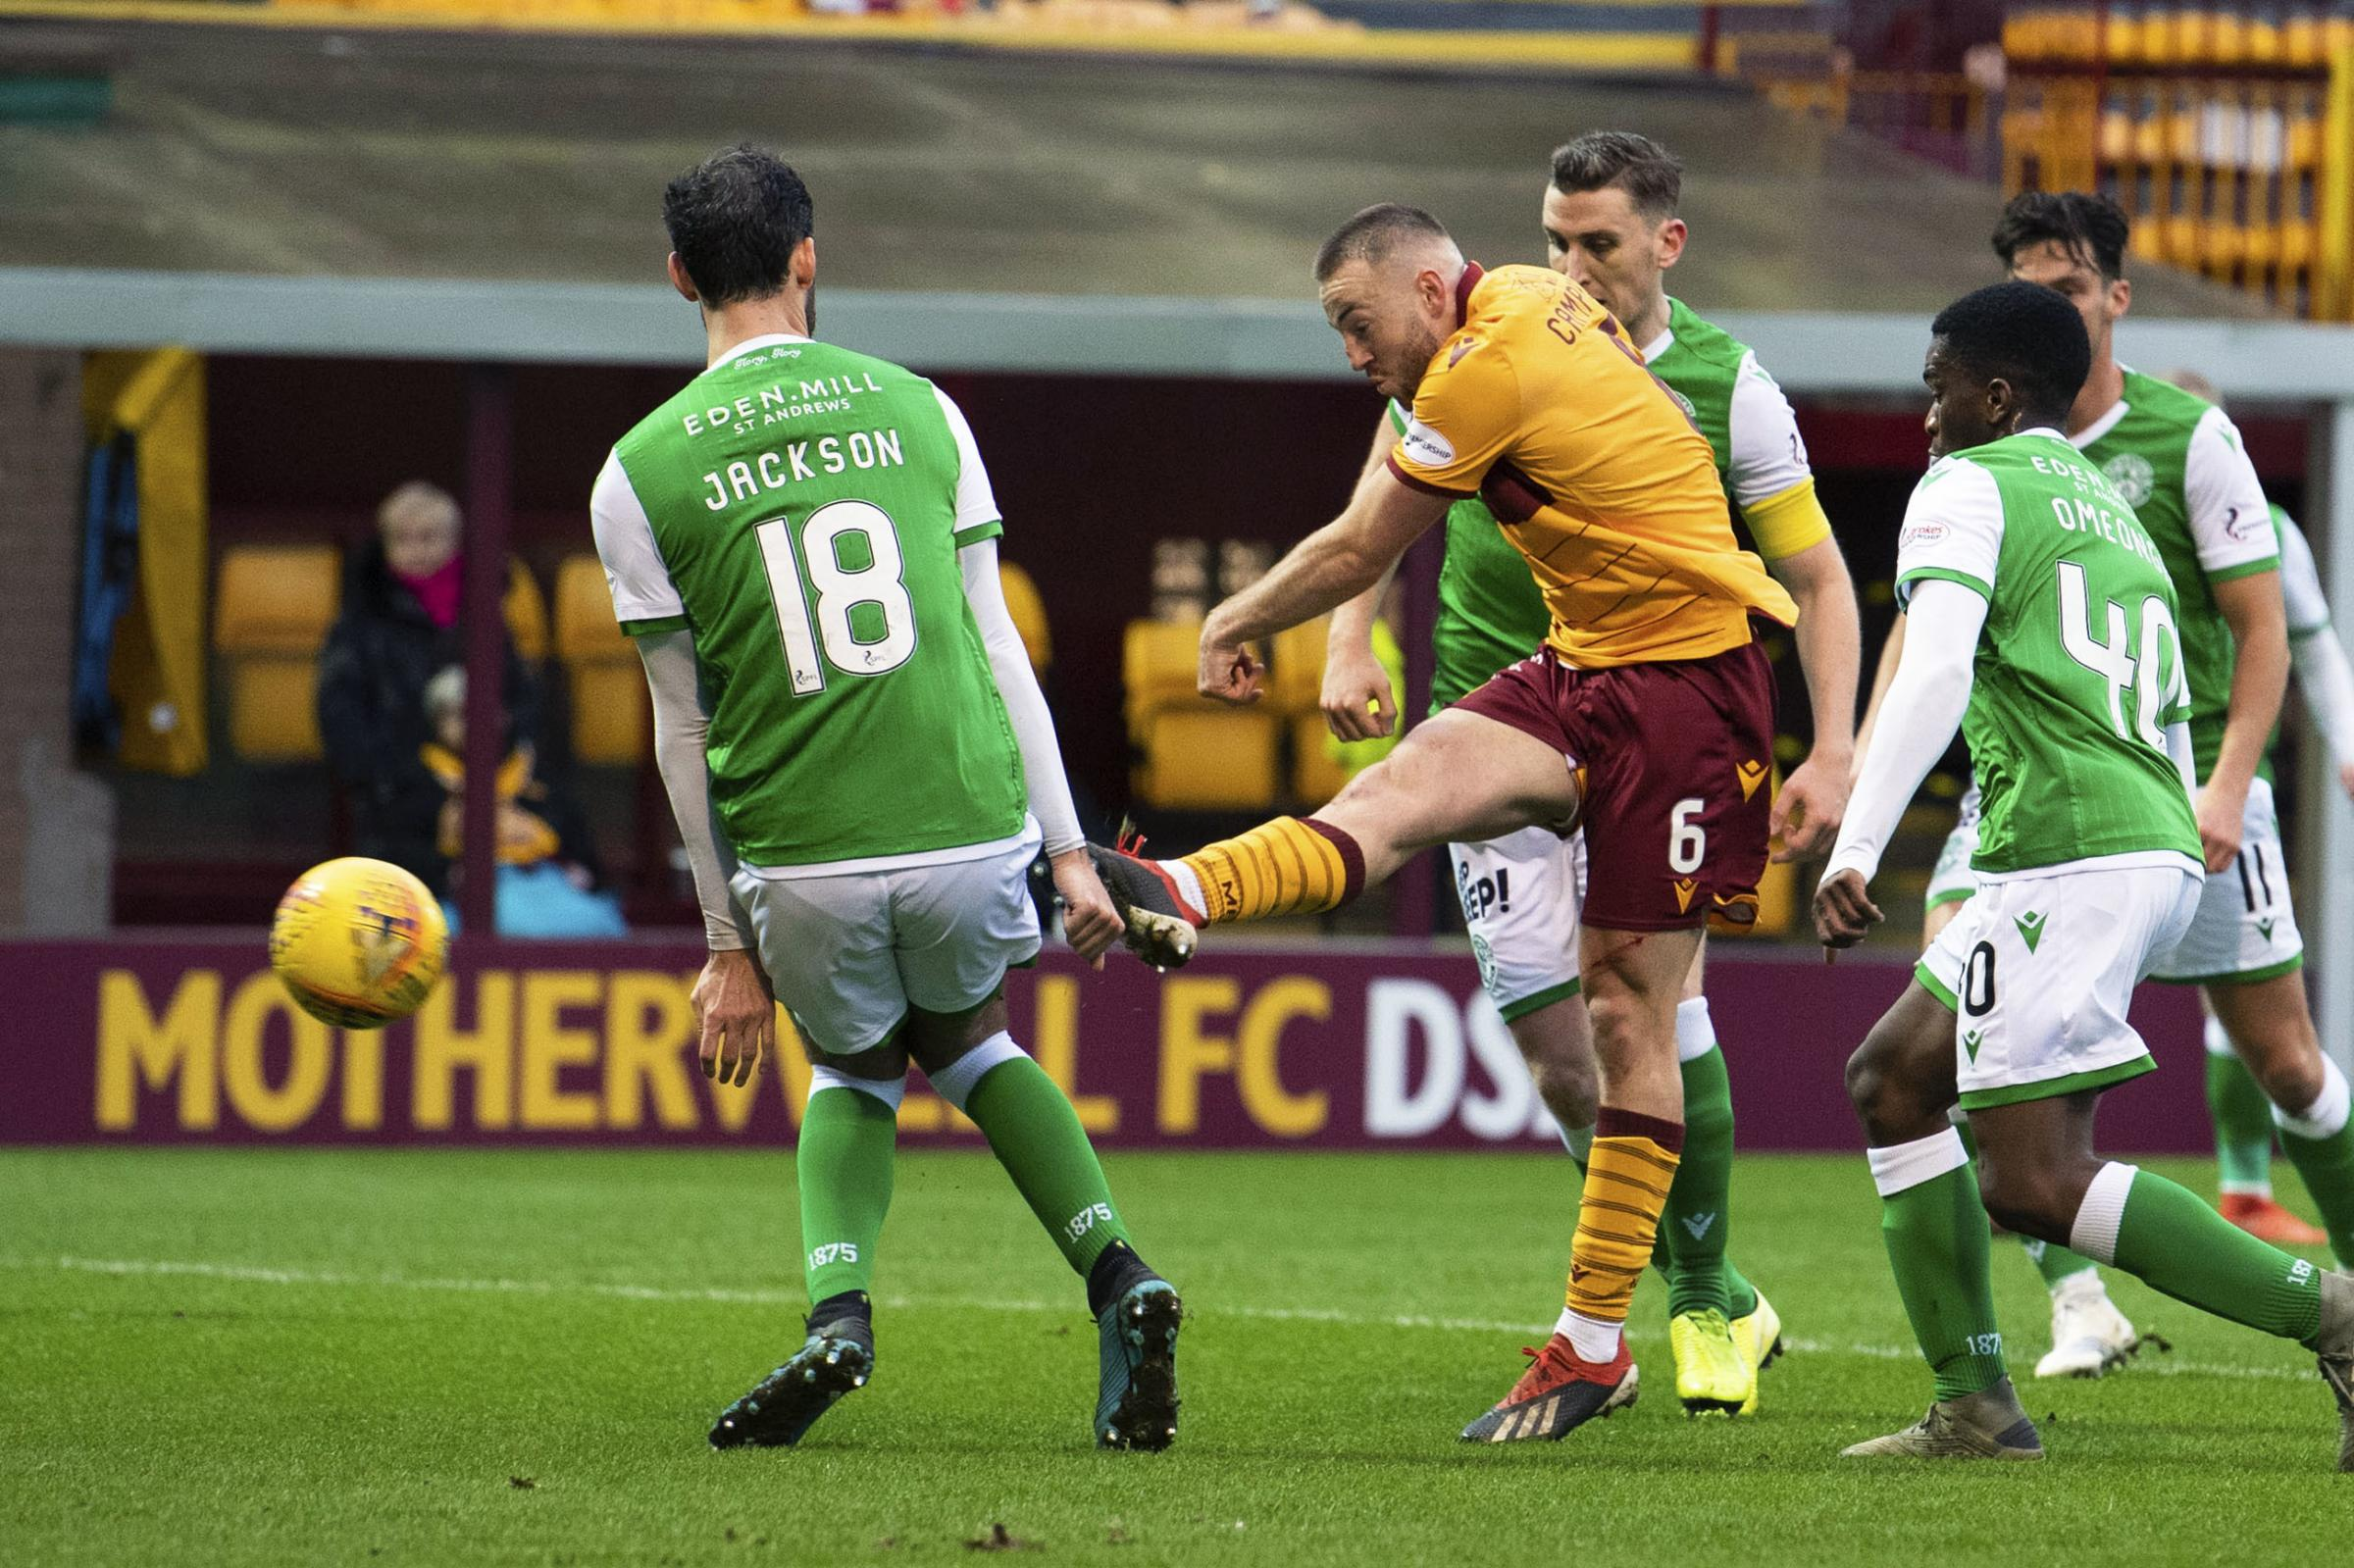 Hibs manager Jack Ross questions own caution as Motherwell blow chances